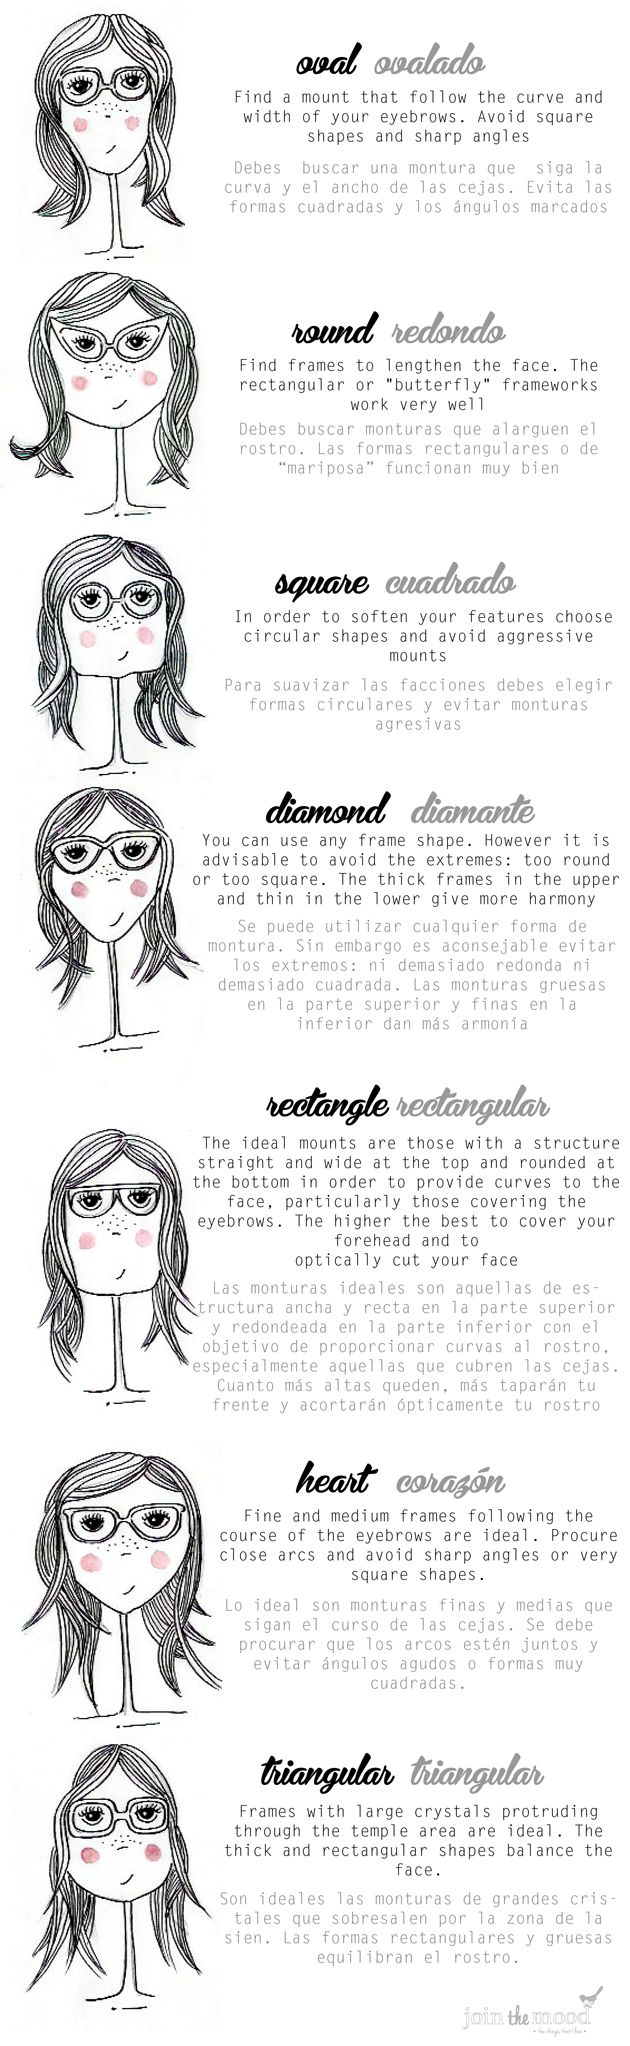 Eyeglasses Frame According To Face Shape : WHAT KIND OF GLASSES YOU MUST USE ACCORDING TO YOUR FACE ...